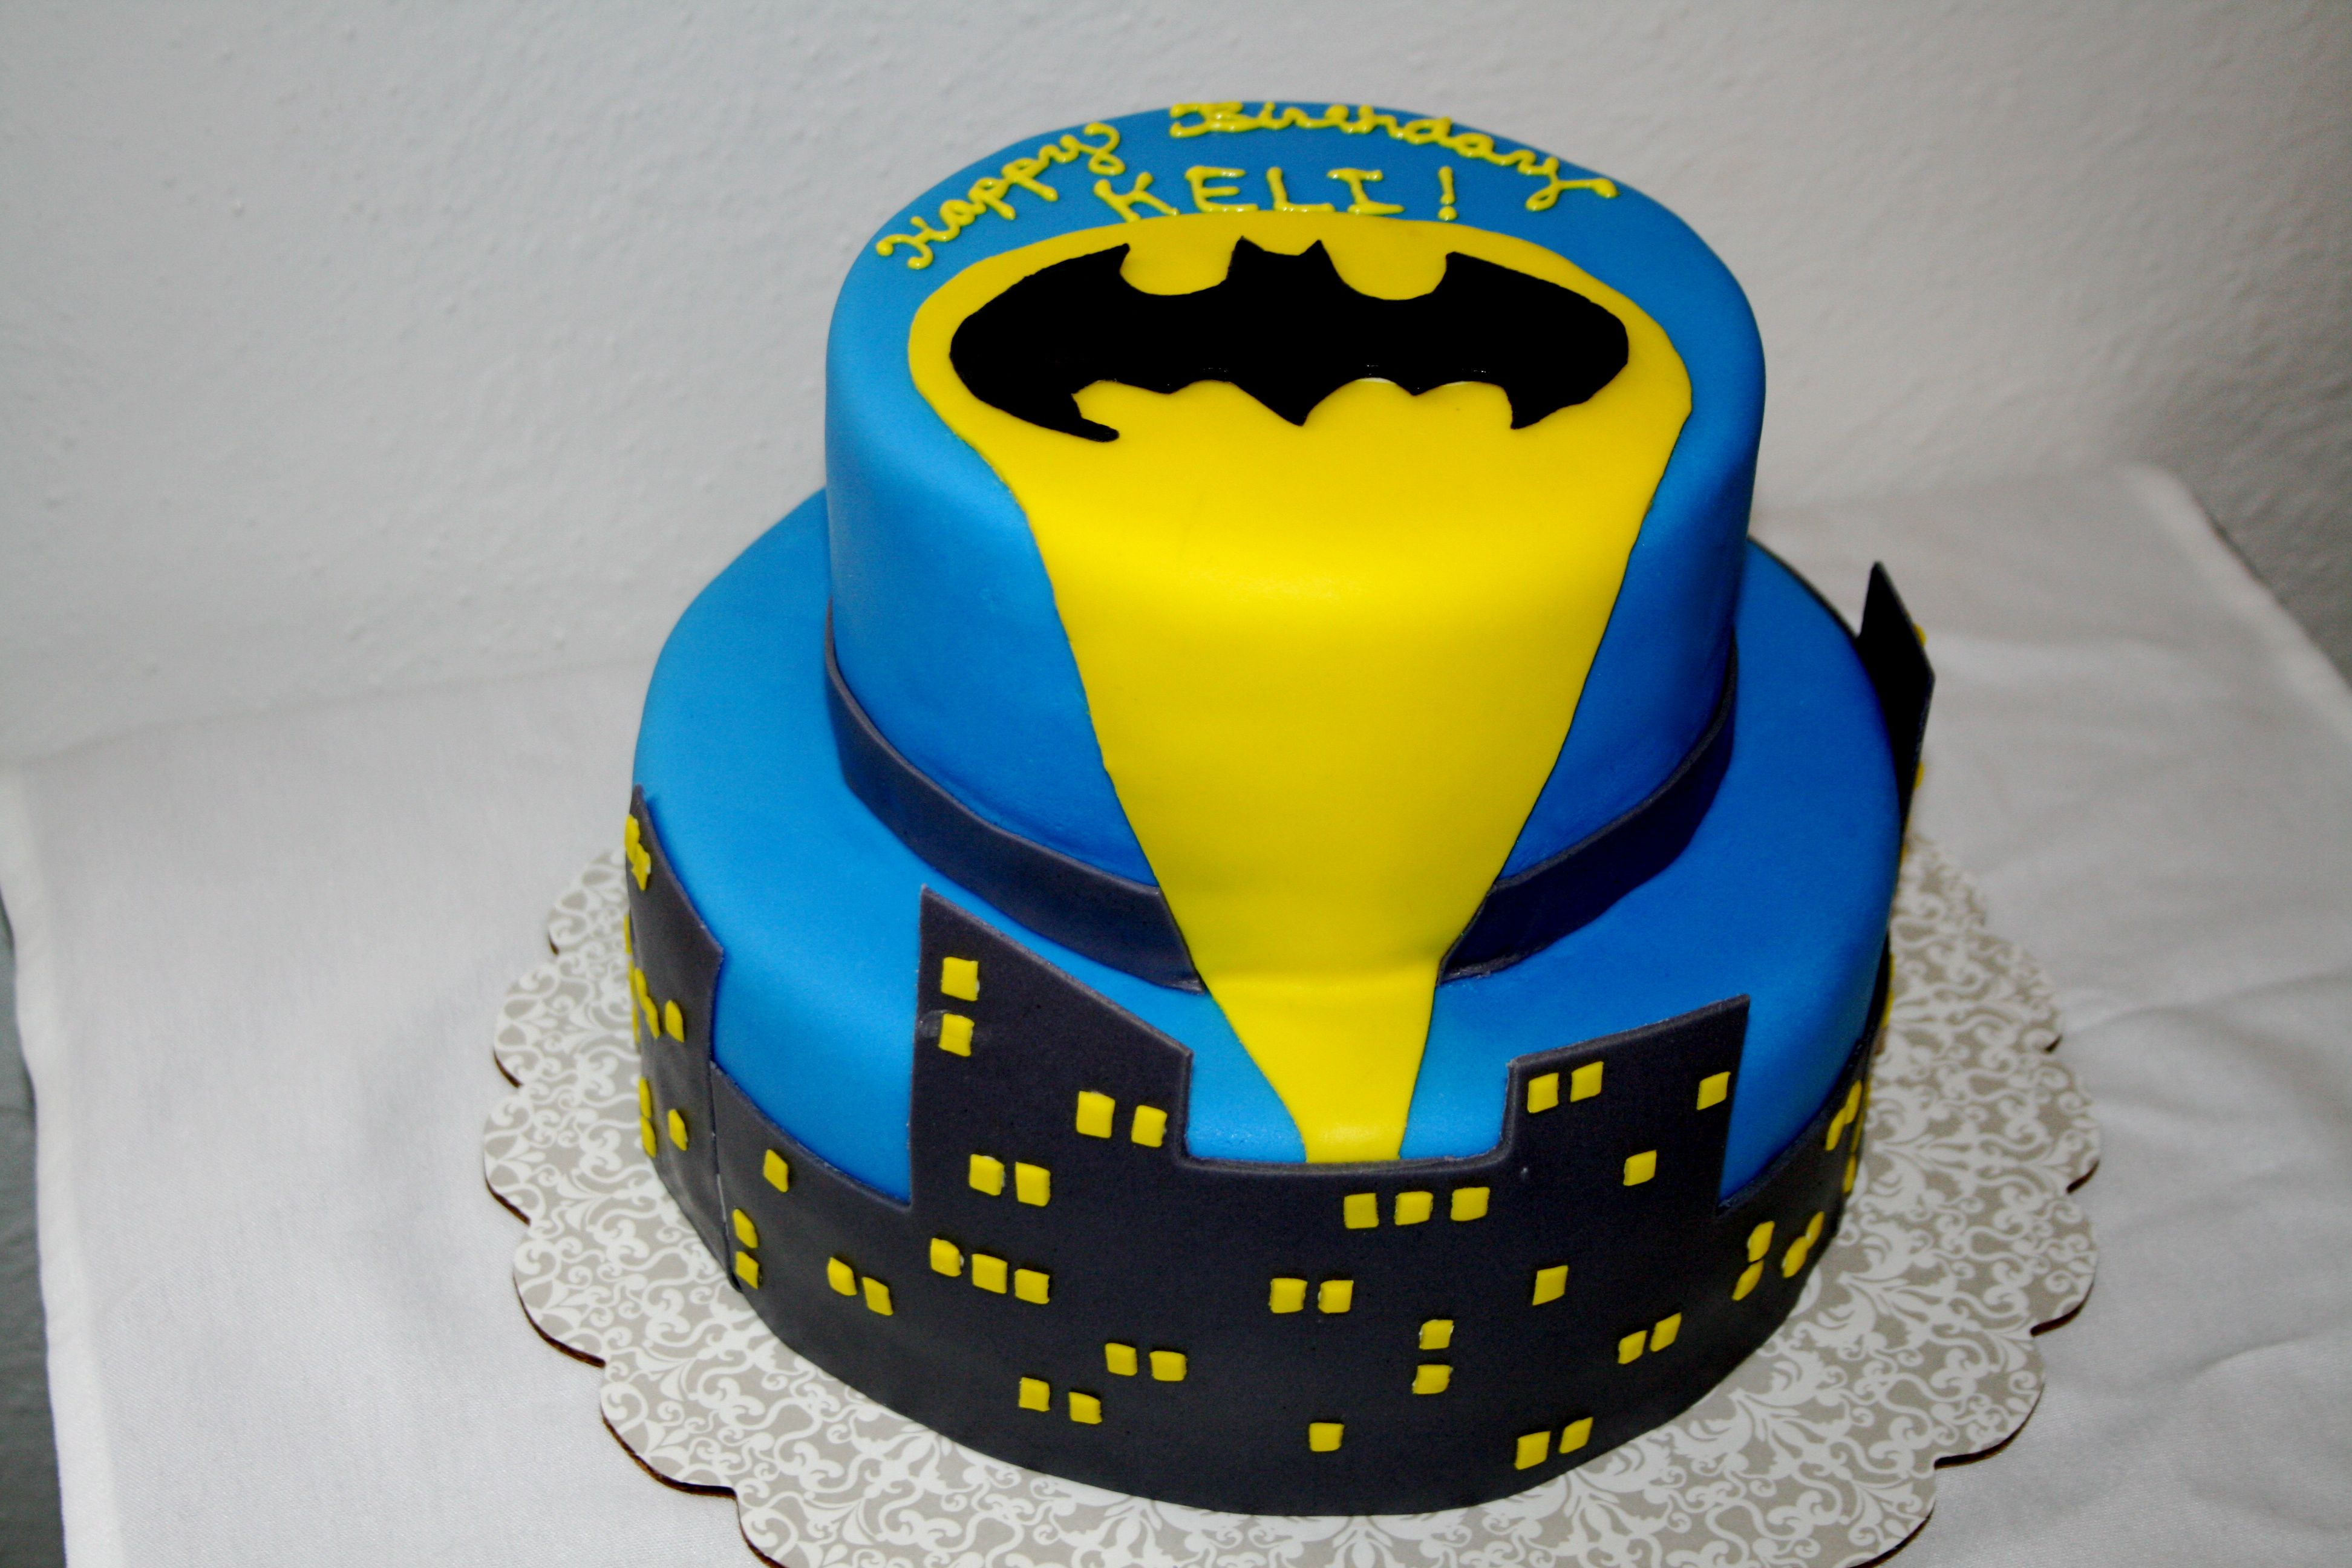 Holy chocolate buttercream Batman its an iPad Batman cakes